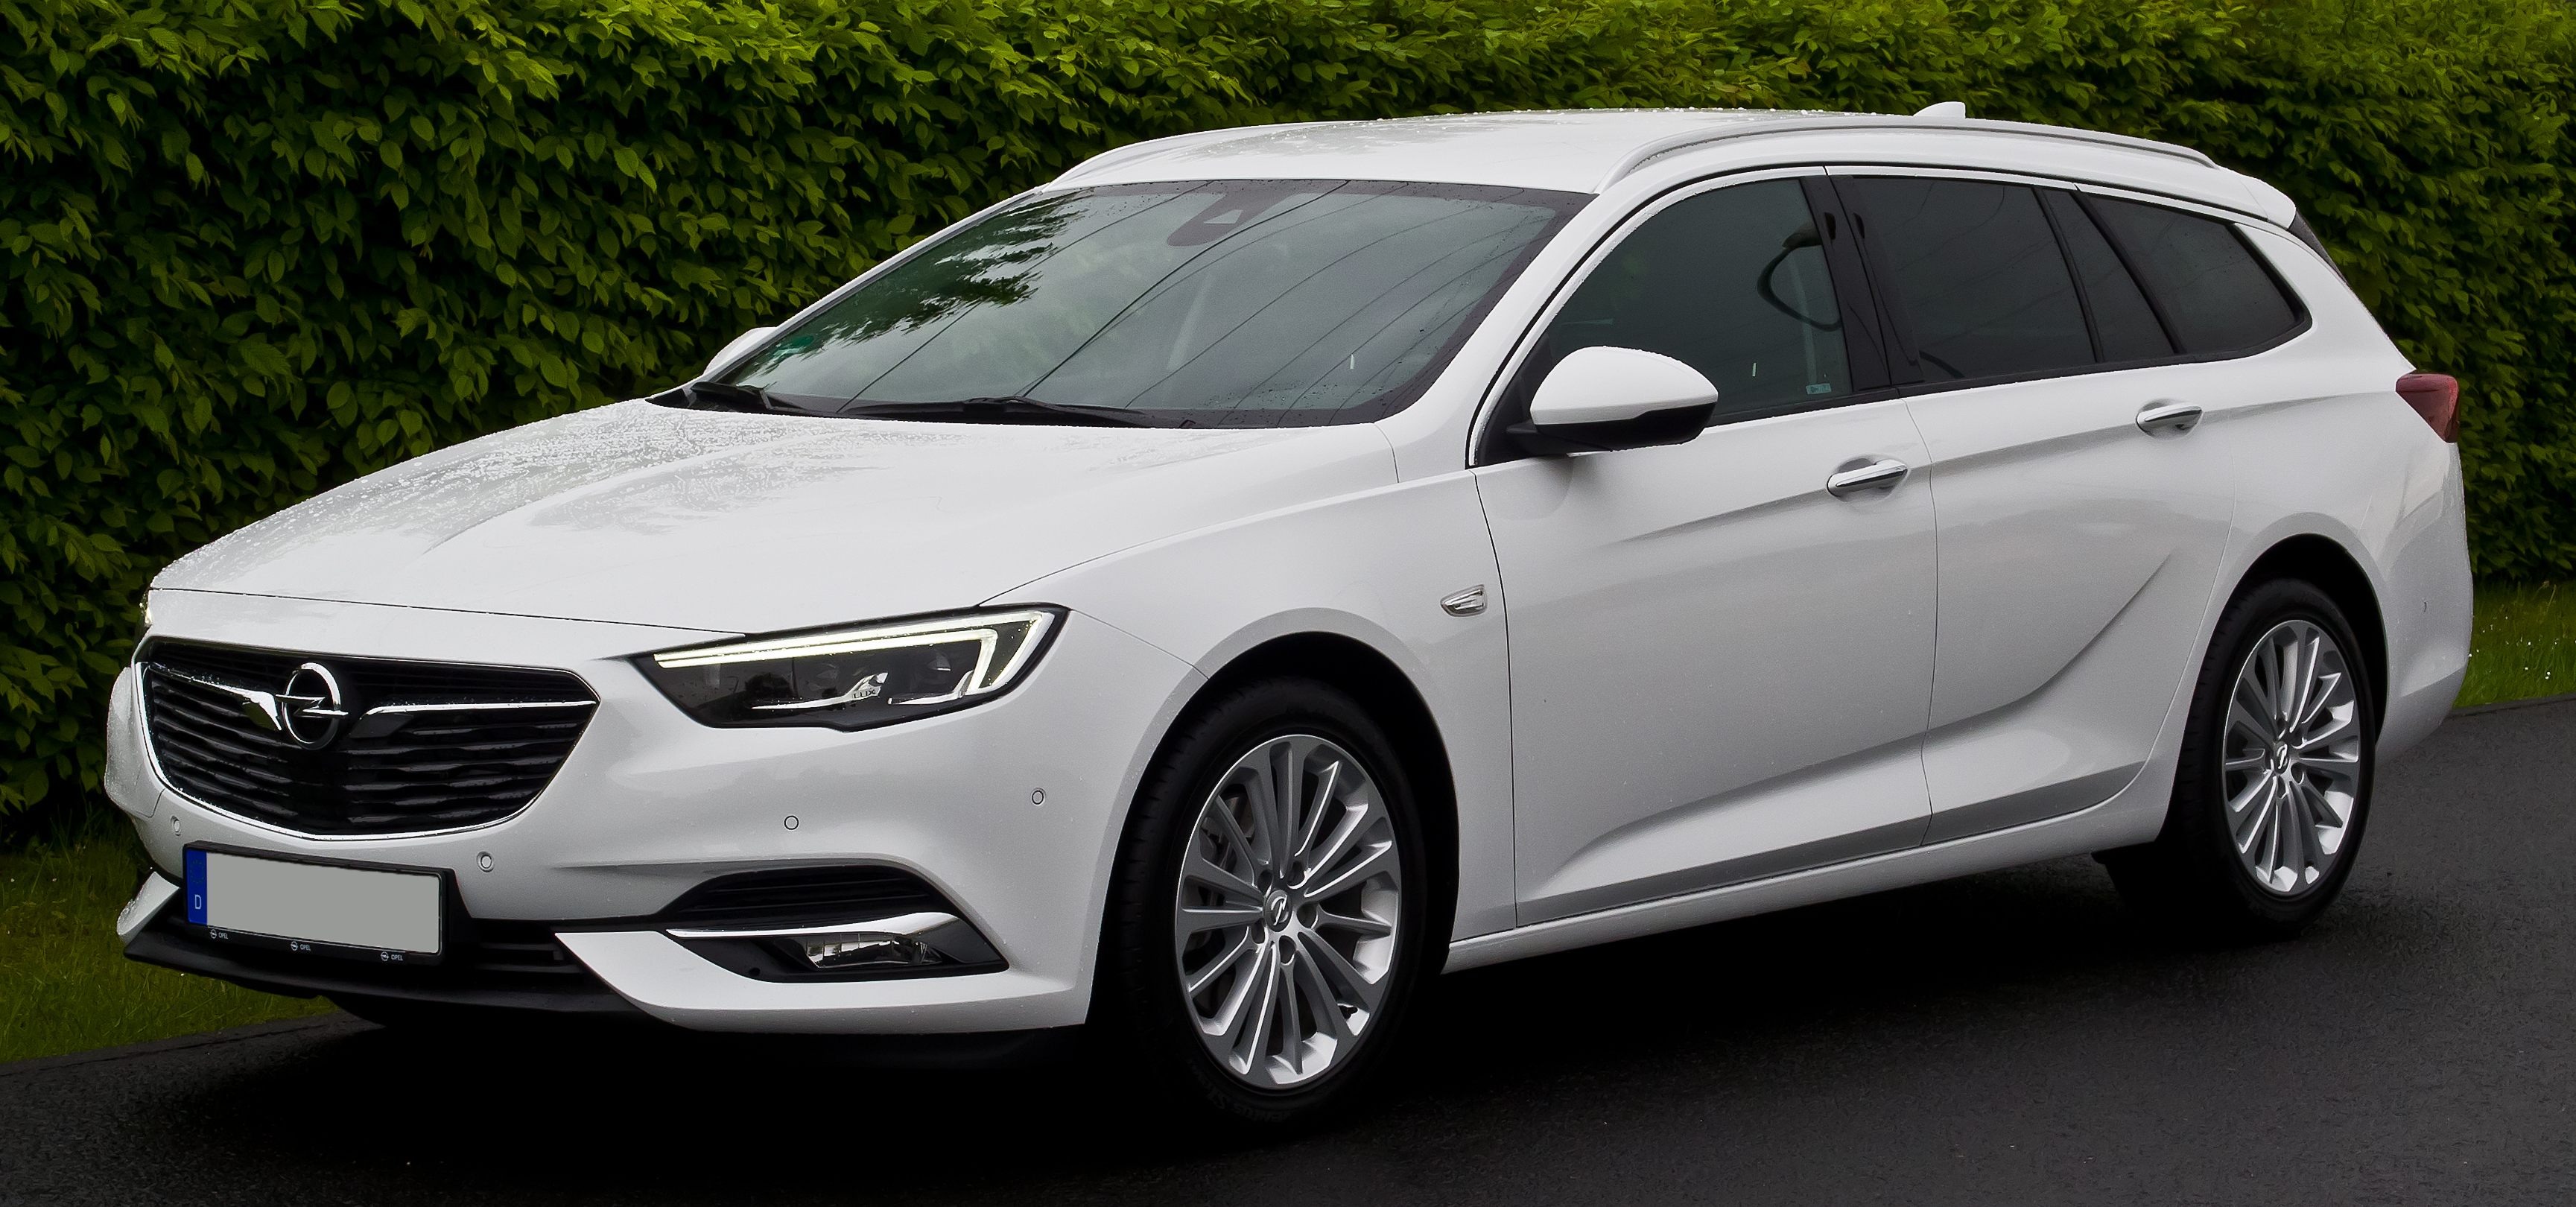 Opel Insignia I Restyling 2013 - now Station wagon 5 door #1